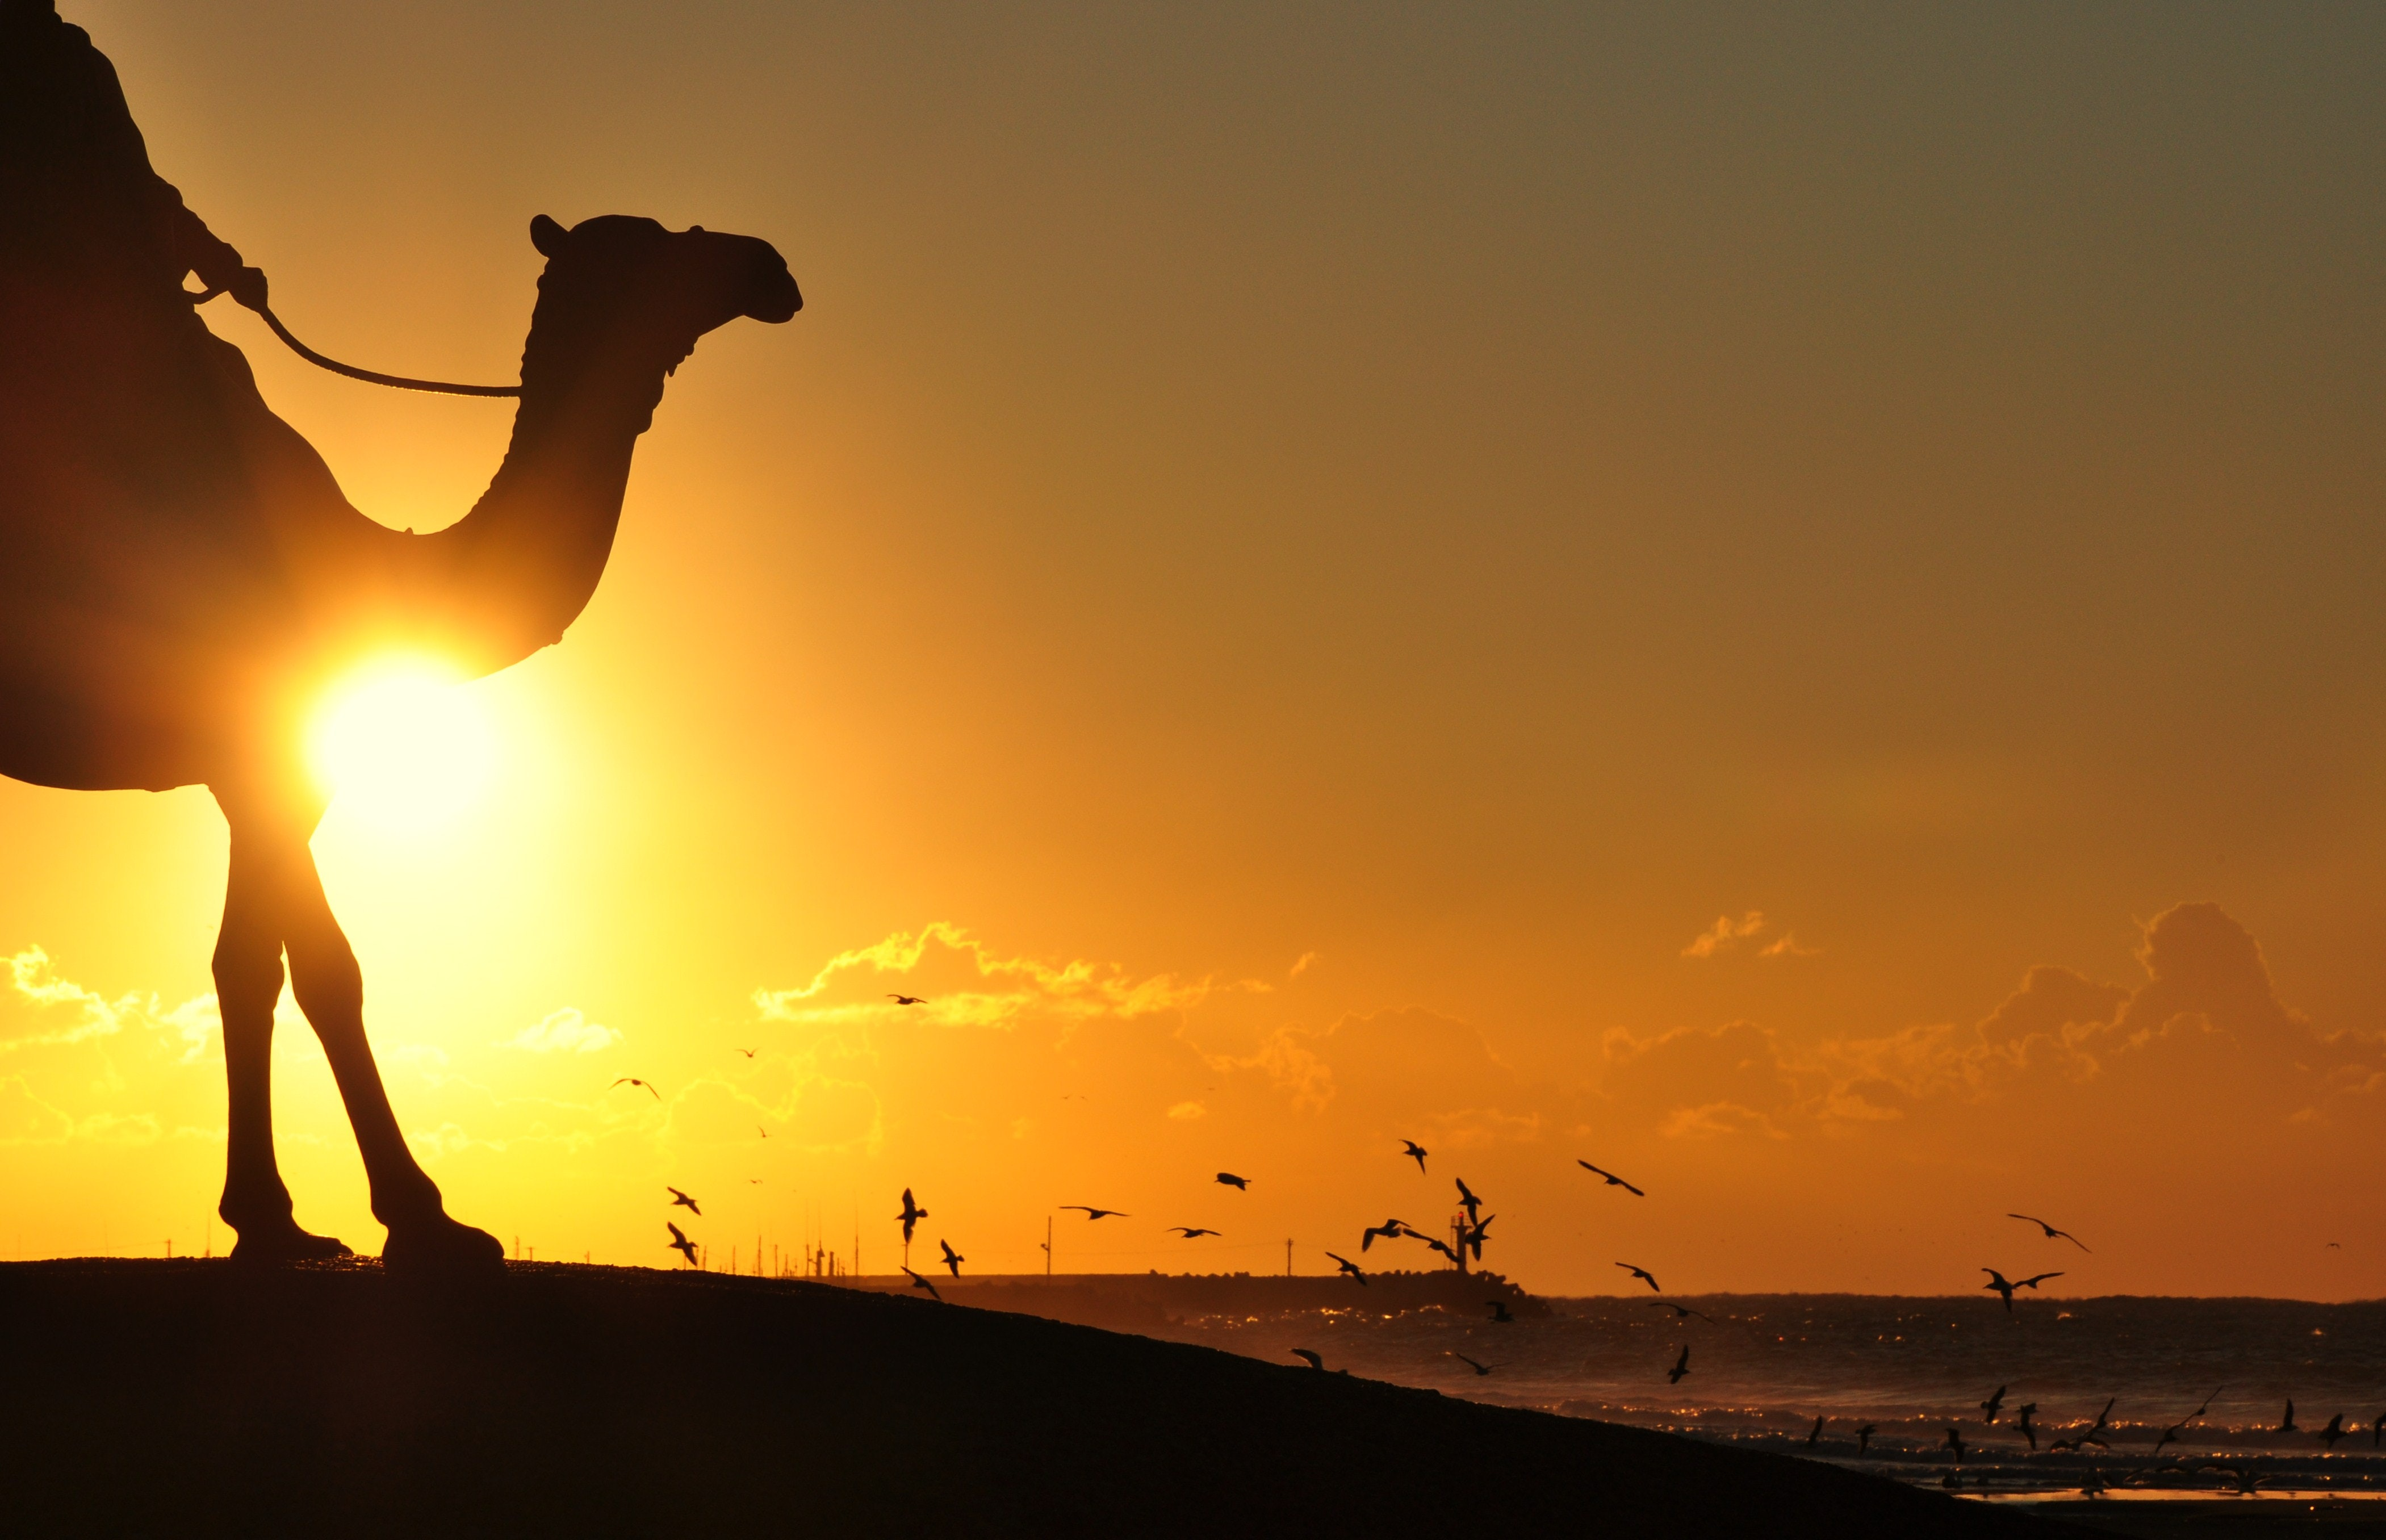 Silhouette Photography Of Man Riding Camel Overseeing Orange Sunset And Flock Of Birds, Backlit, Sea, Sunset, Sunrise, HQ Photo